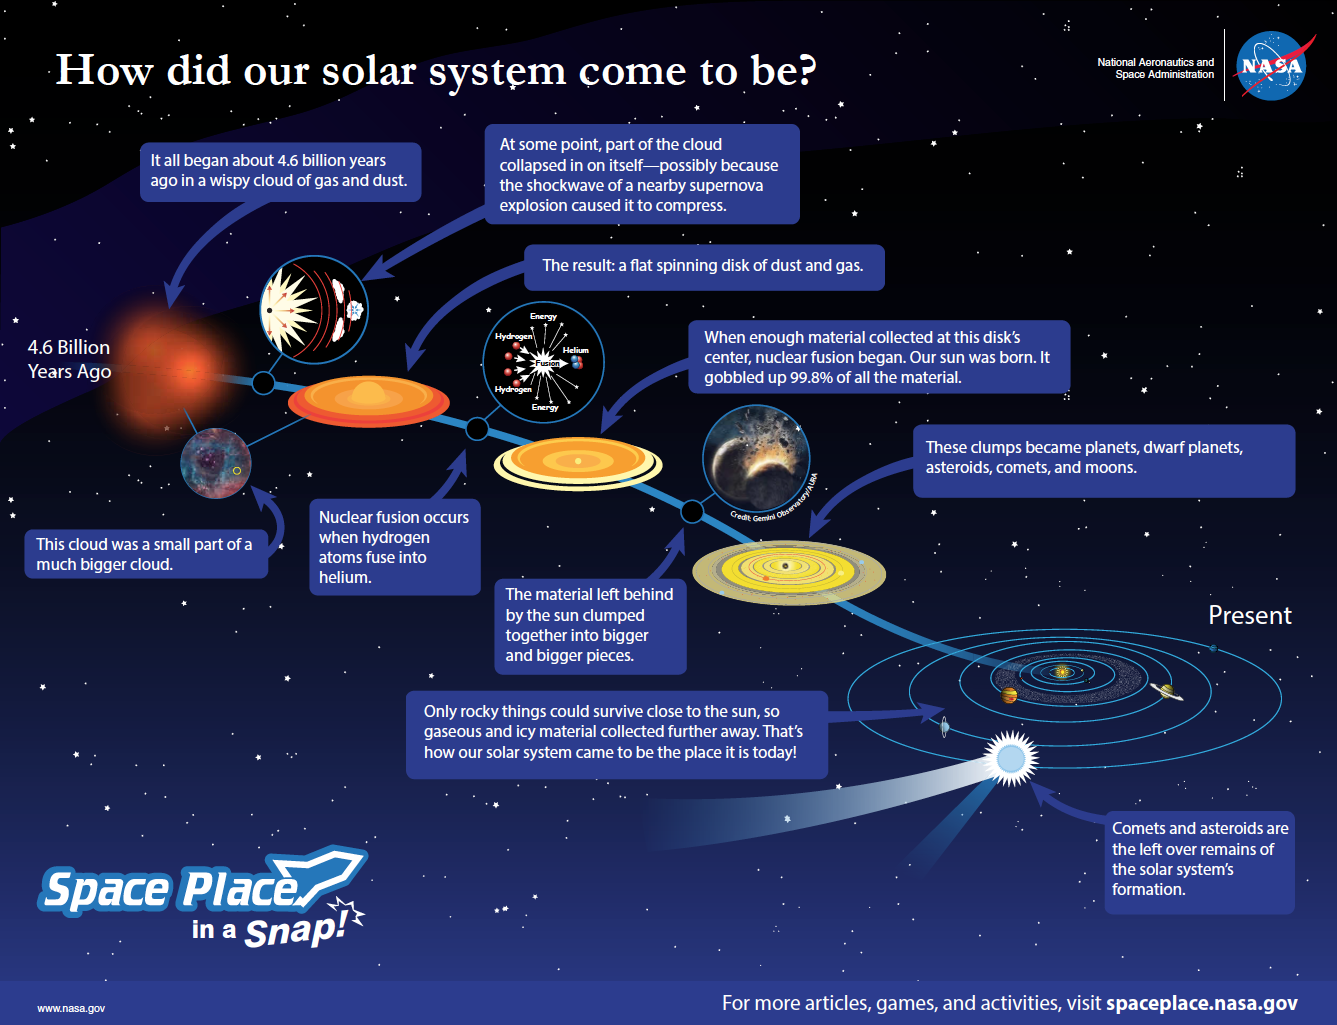 How did our Solar System come to be